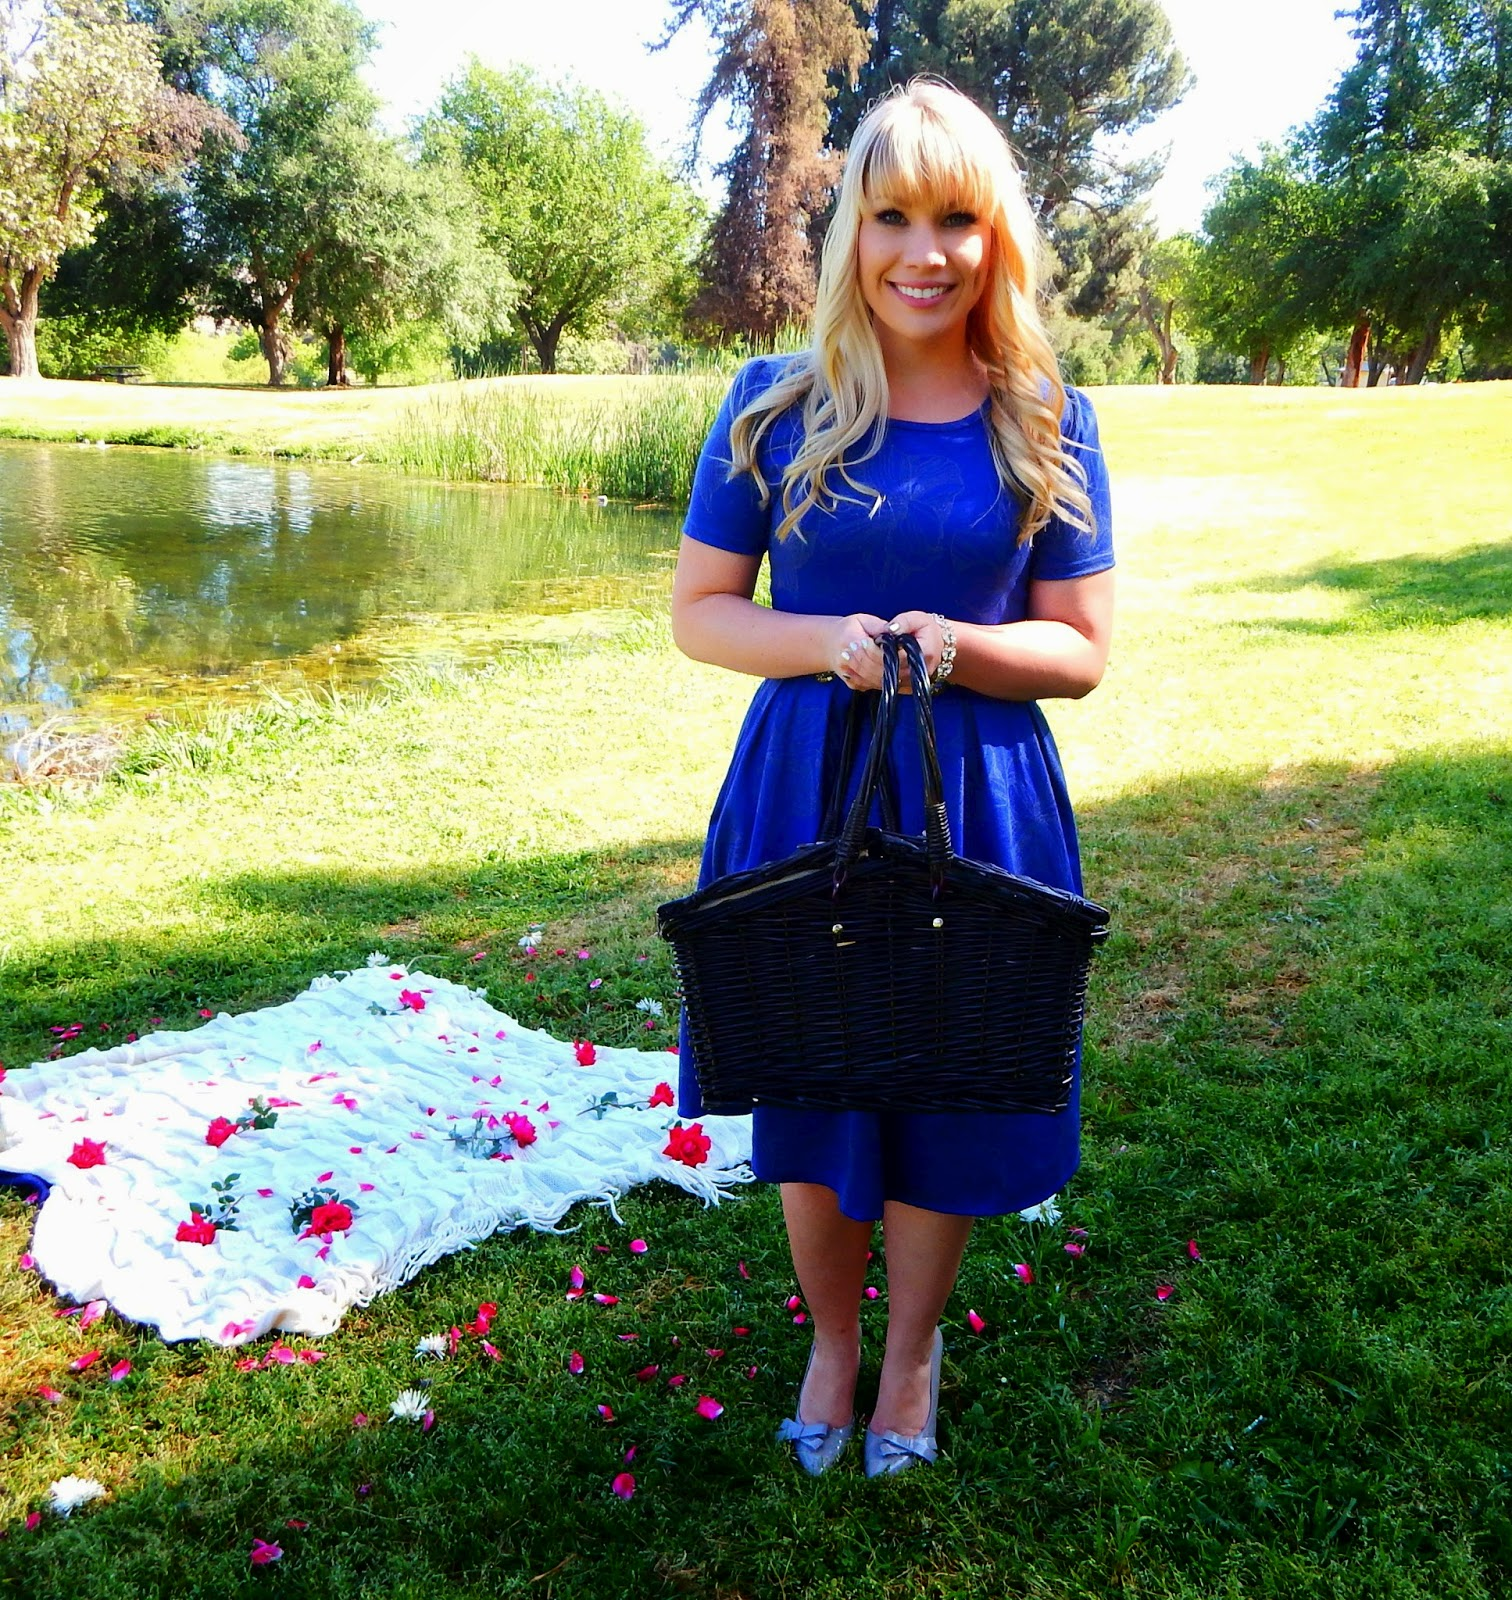 Why I Stopped Being a Lularoe Consultant by popular California fashion blogger Lizzie in Lace